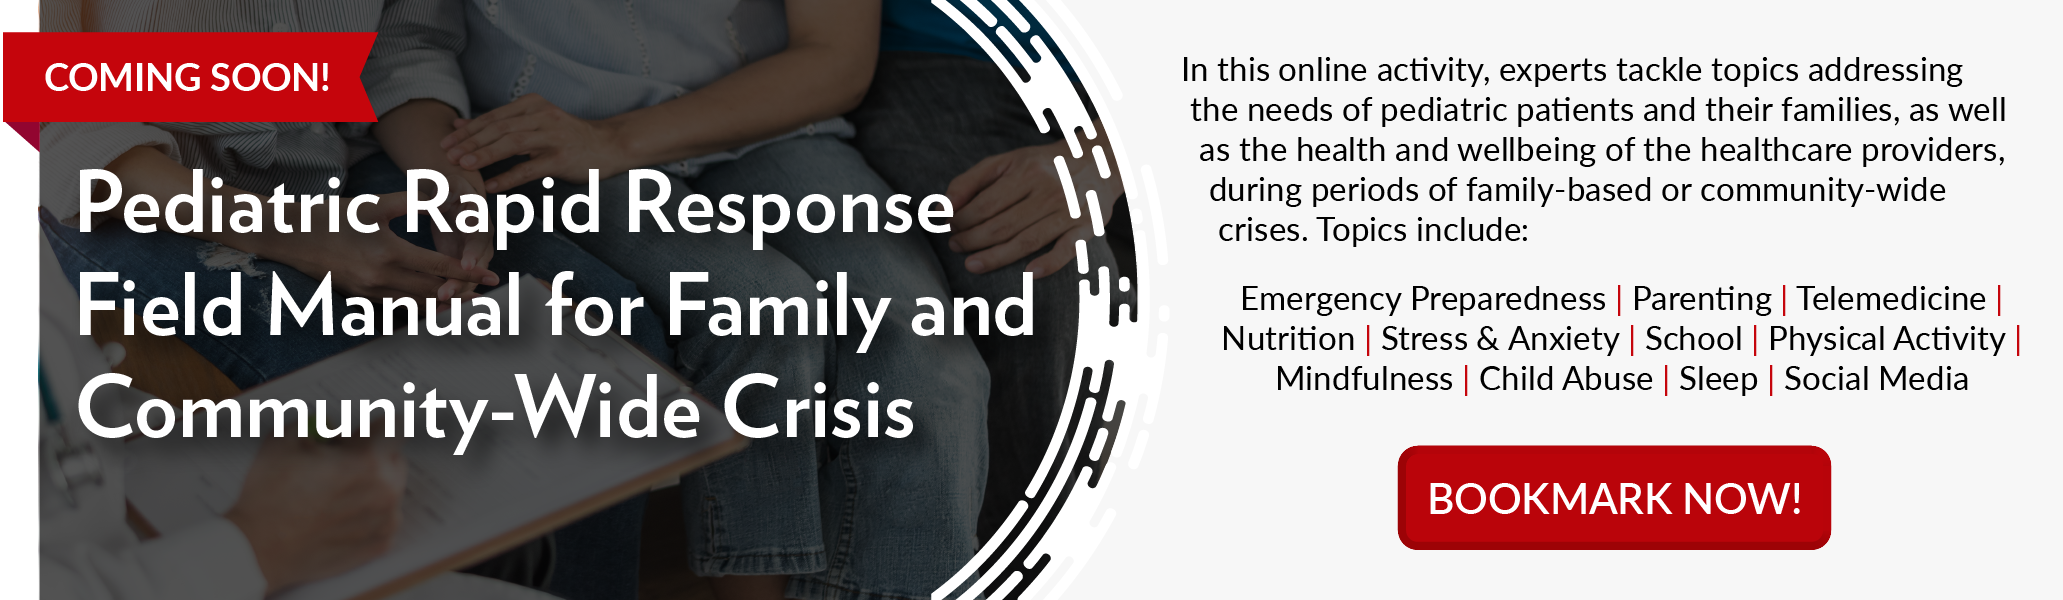 Pediatric Rapid Response Field Manual for Family and Community-Wide Crisis